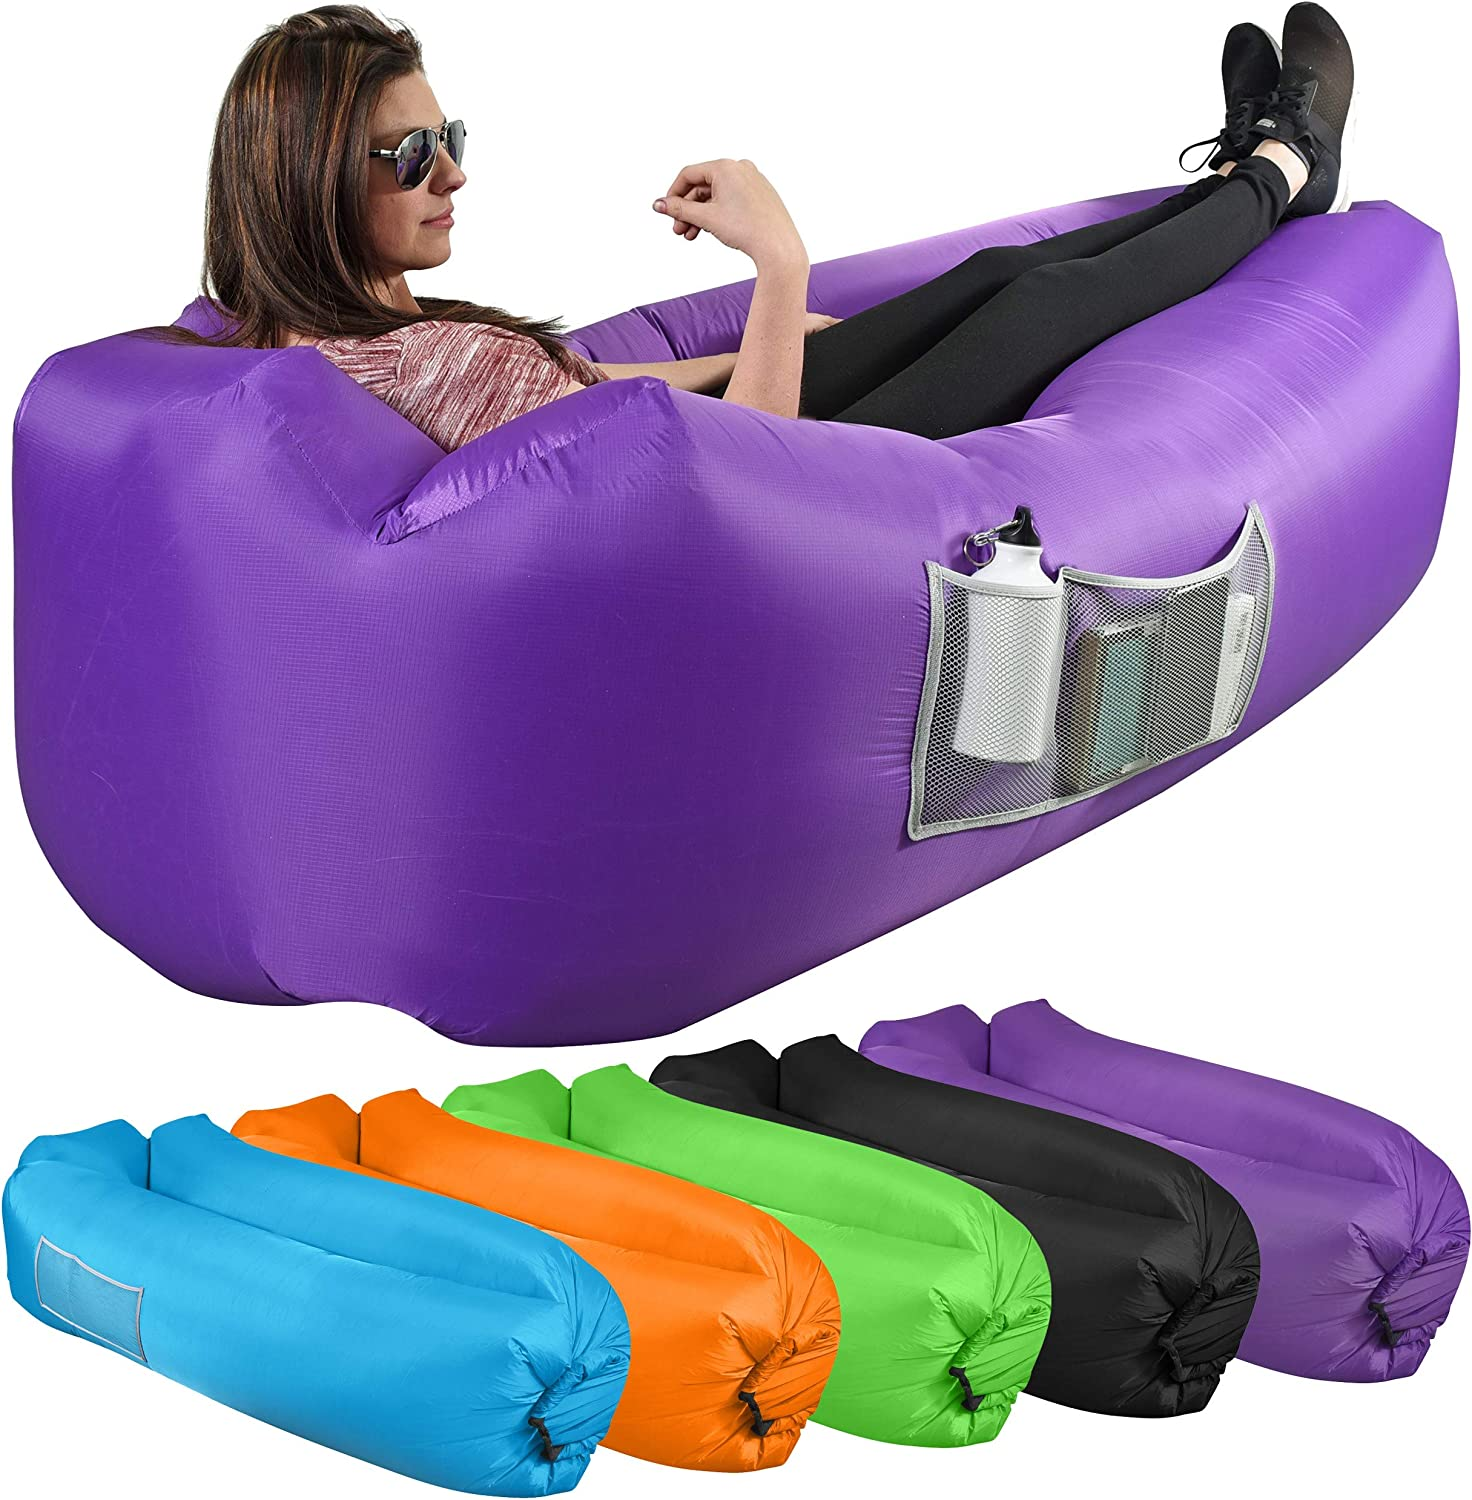 Beach Heavy Duty Nylon Fabric Outdoor Lounge Couch with Headrest Large and Small Mesh Pockets Stake KOR Outdoors Inflatable Air Lounger//Sofa with Storage Bag No-Pump Camping